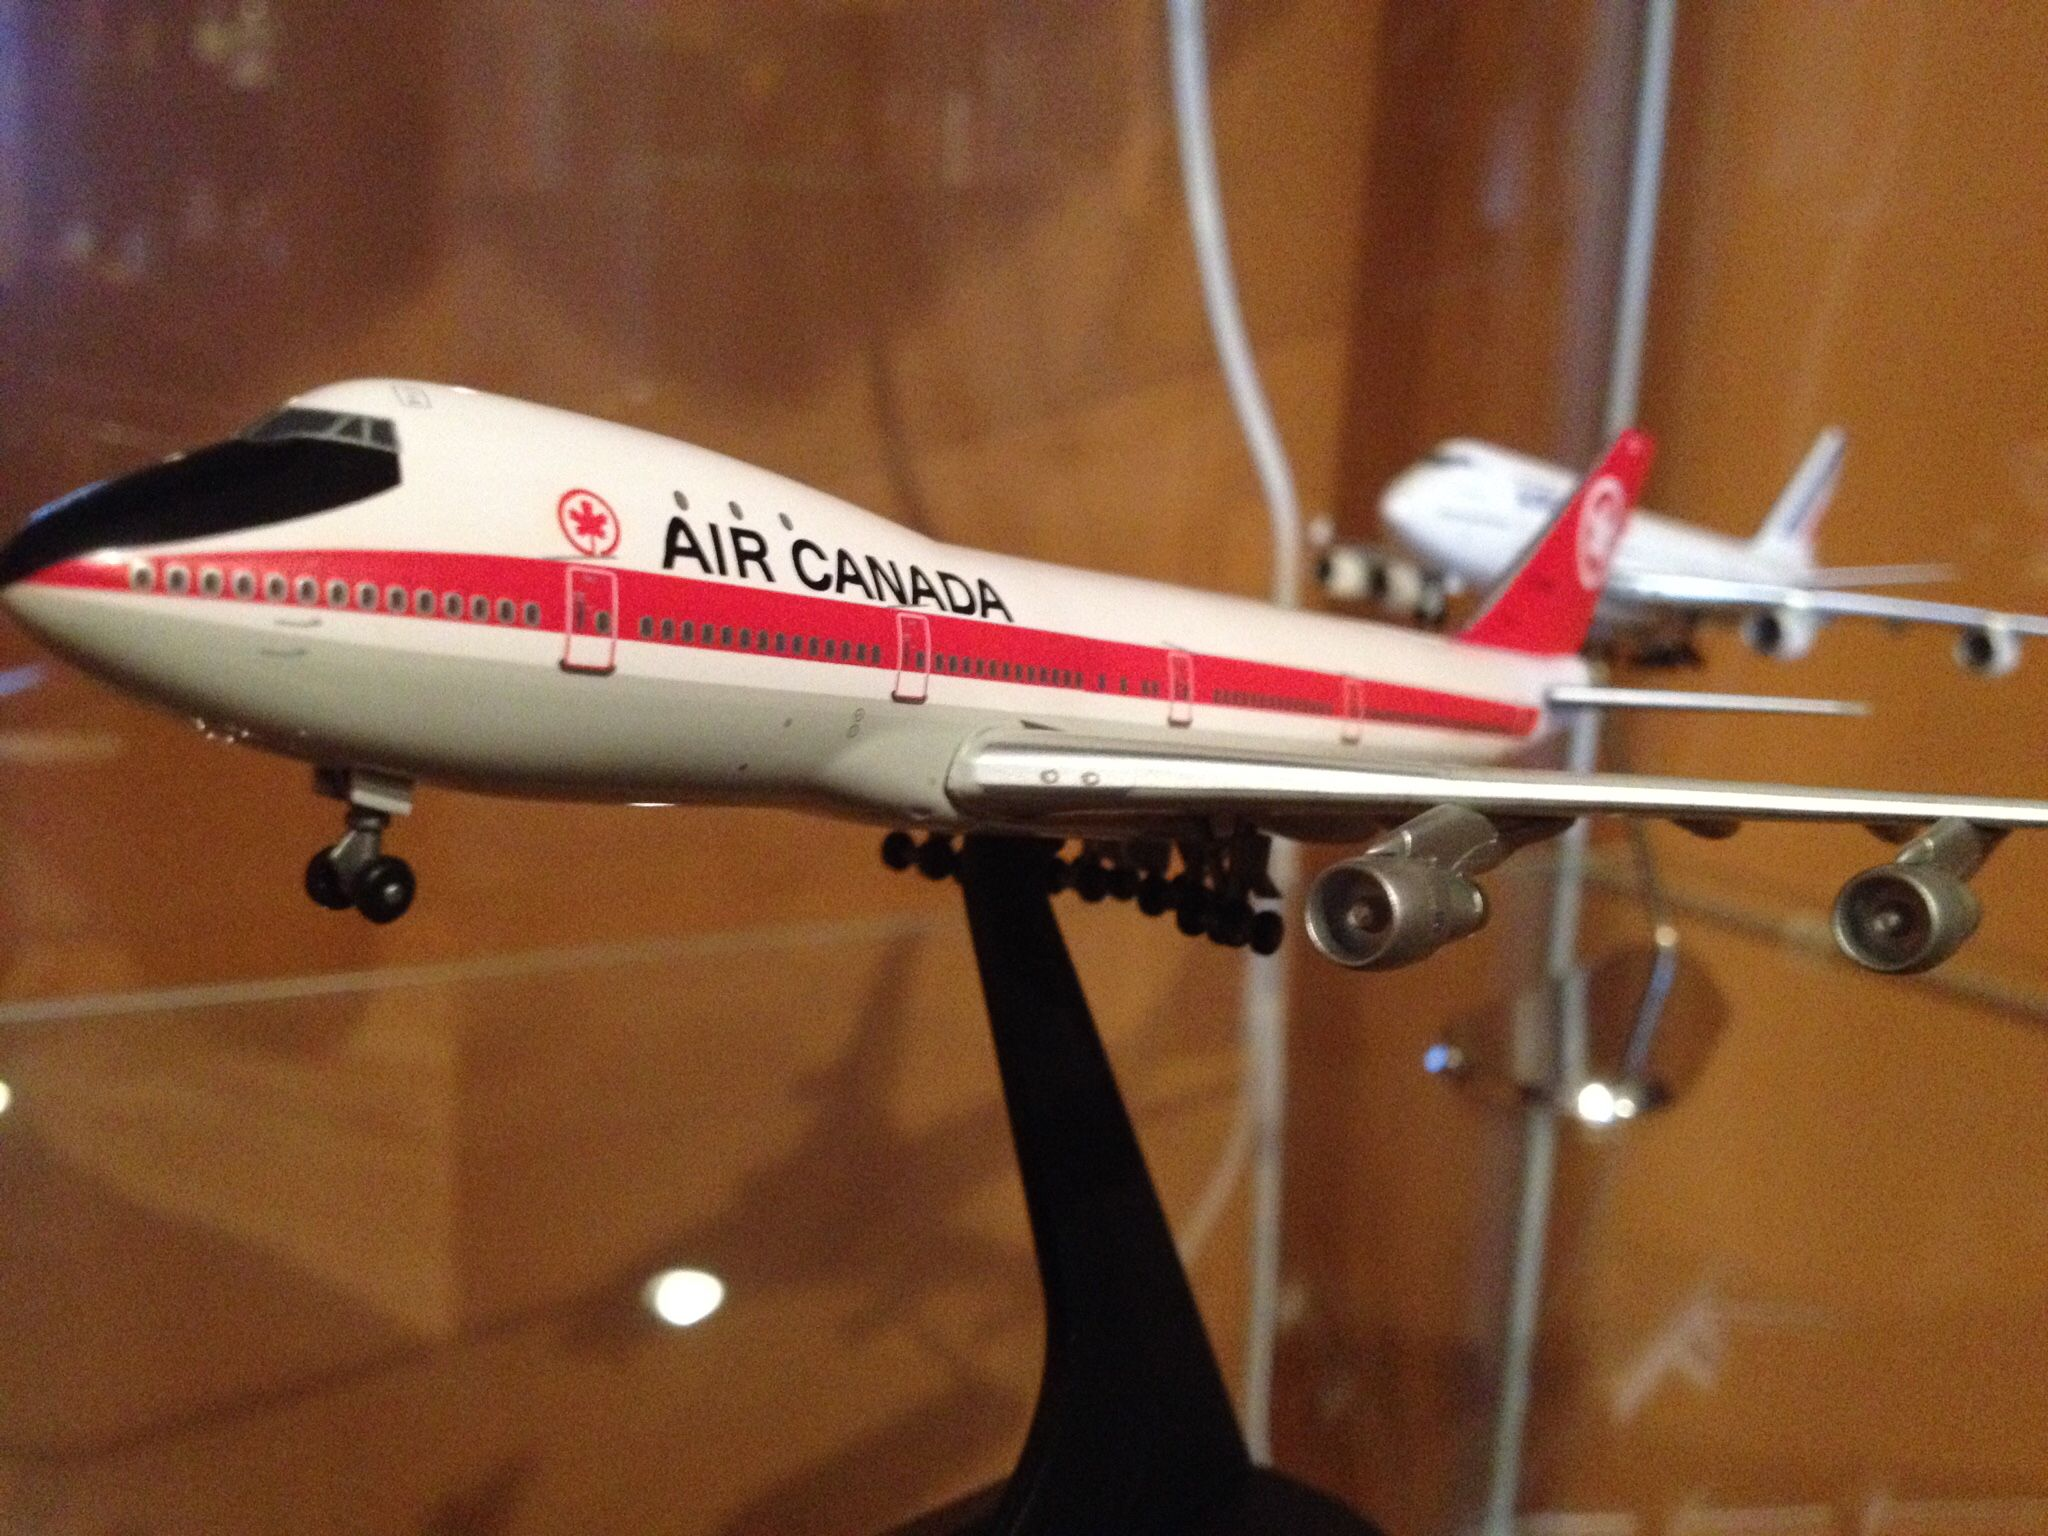 Air Canada 747133 302 delivery paint scheme 1971 Dragon